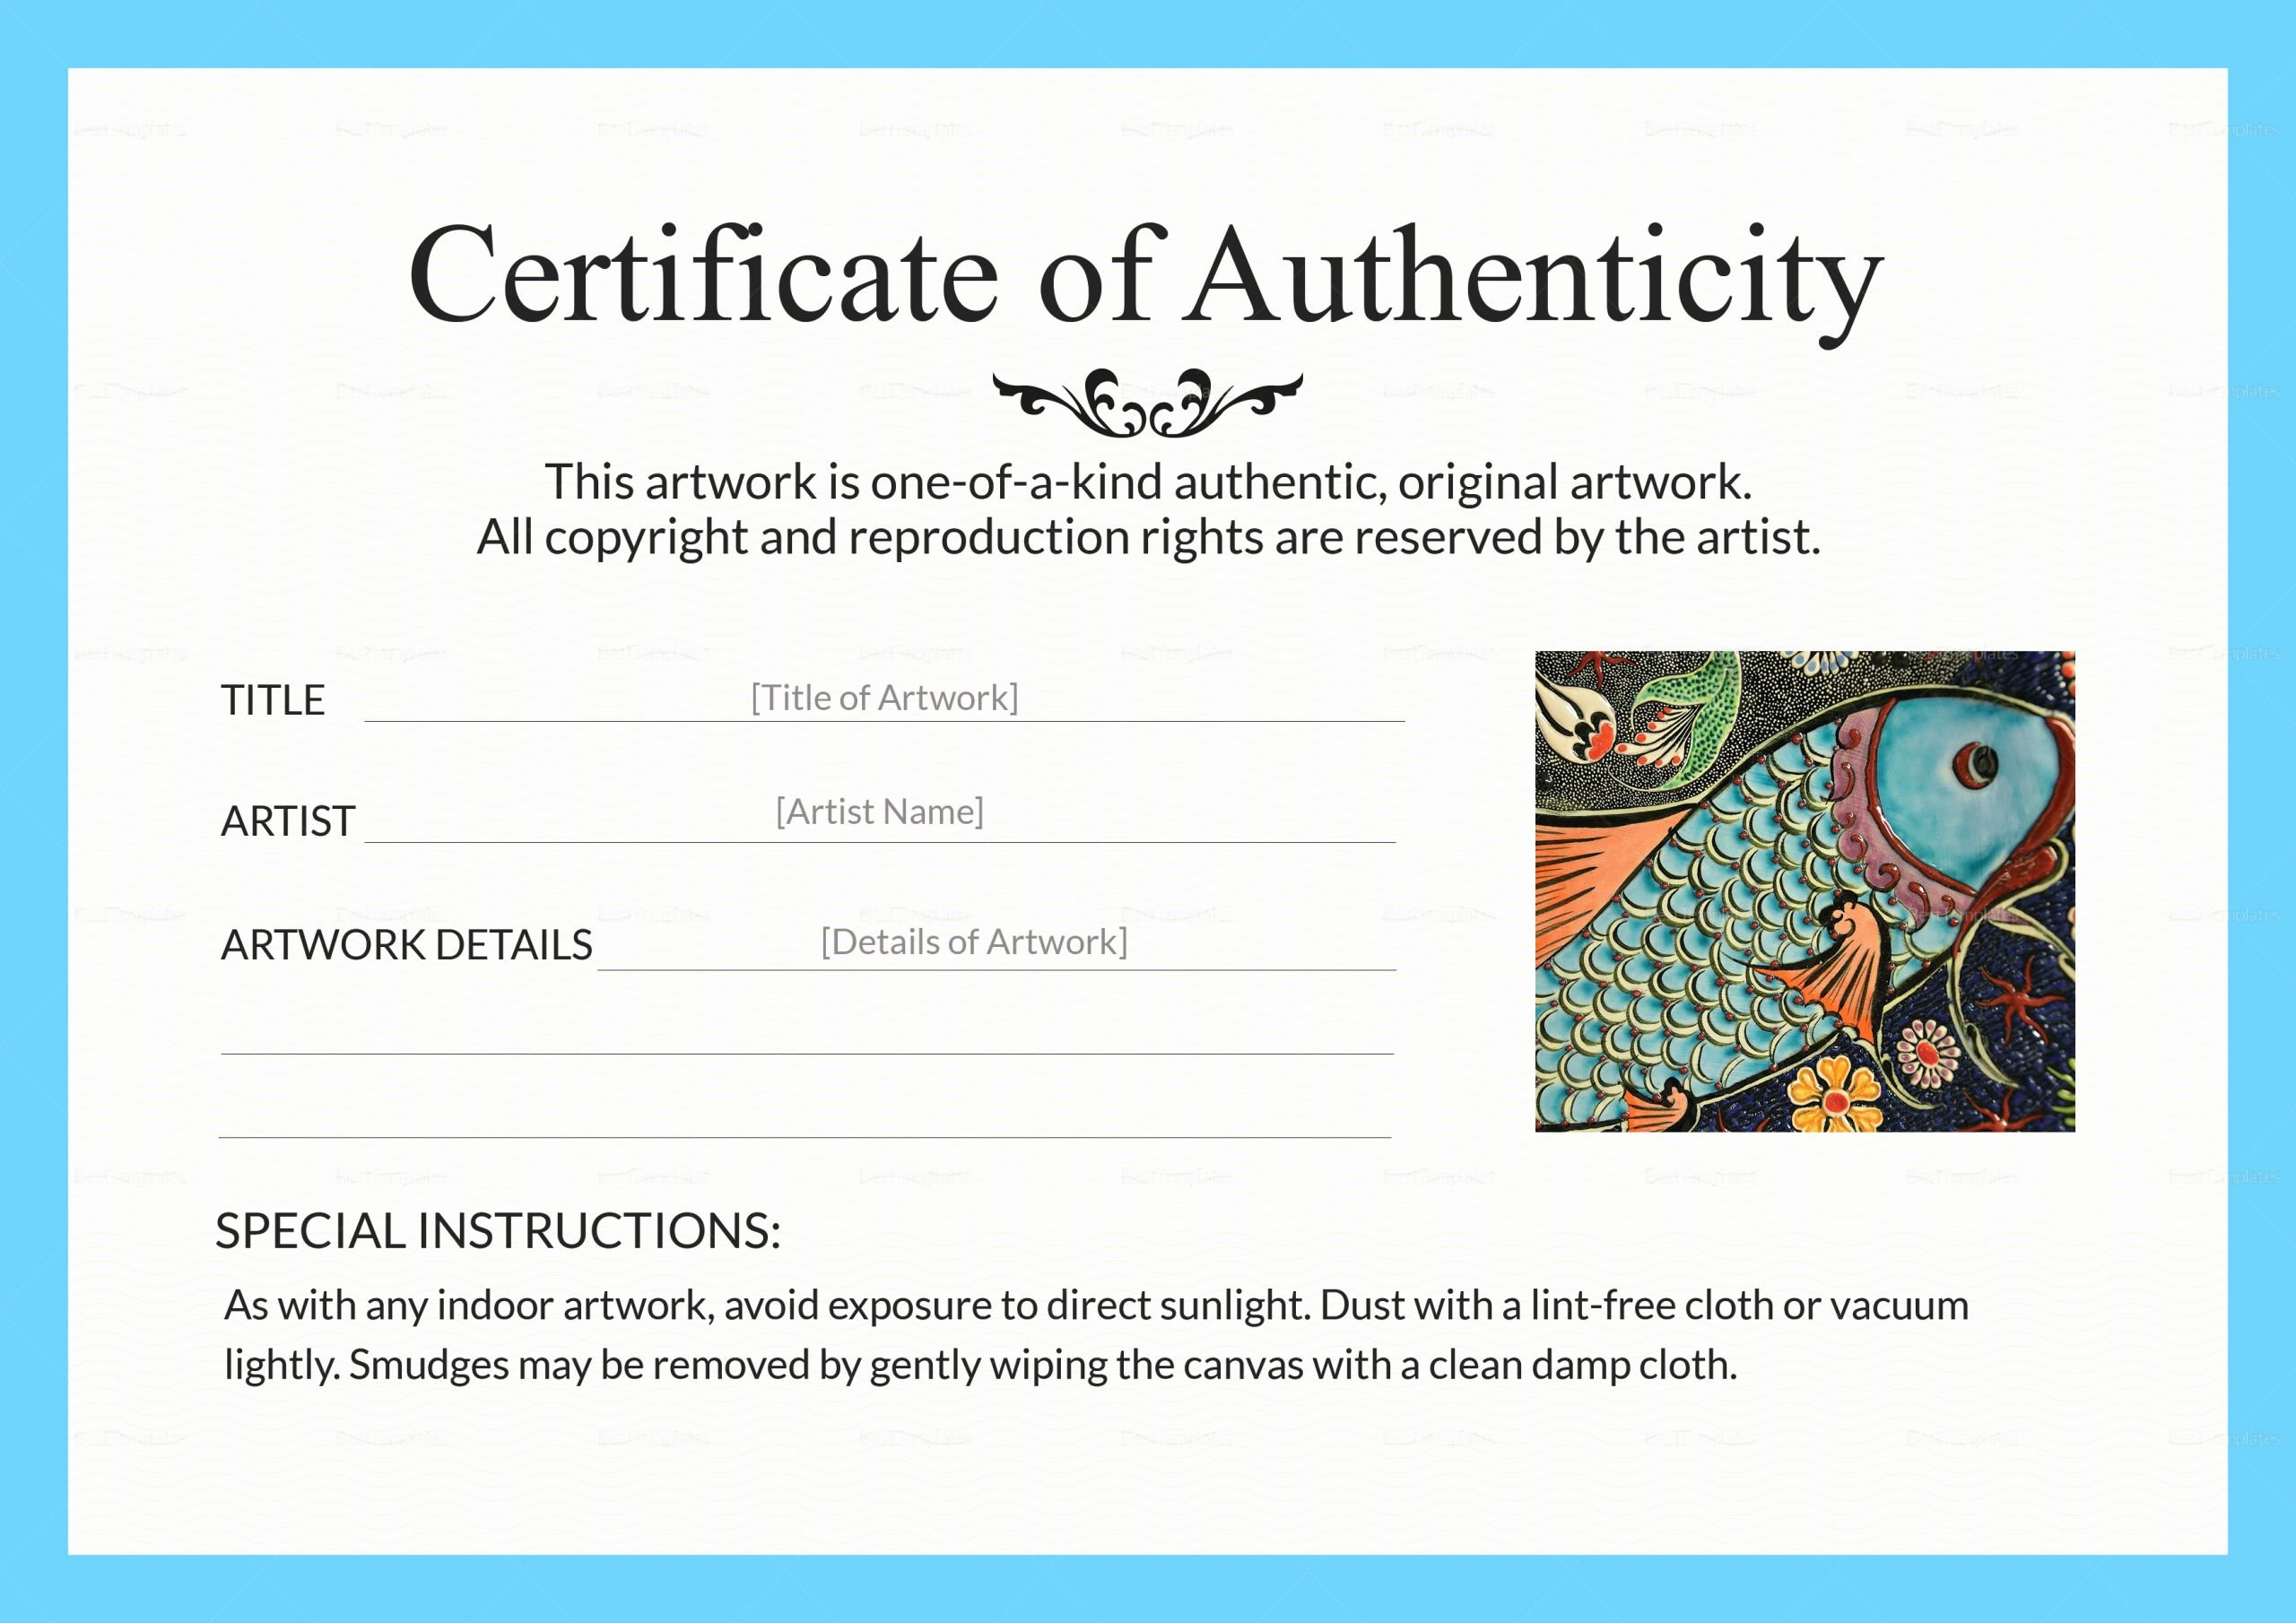 Artwork Certificate Of Authenticity Templates Fresh Artwork Authenticity Certificate Design Template In Psd Word